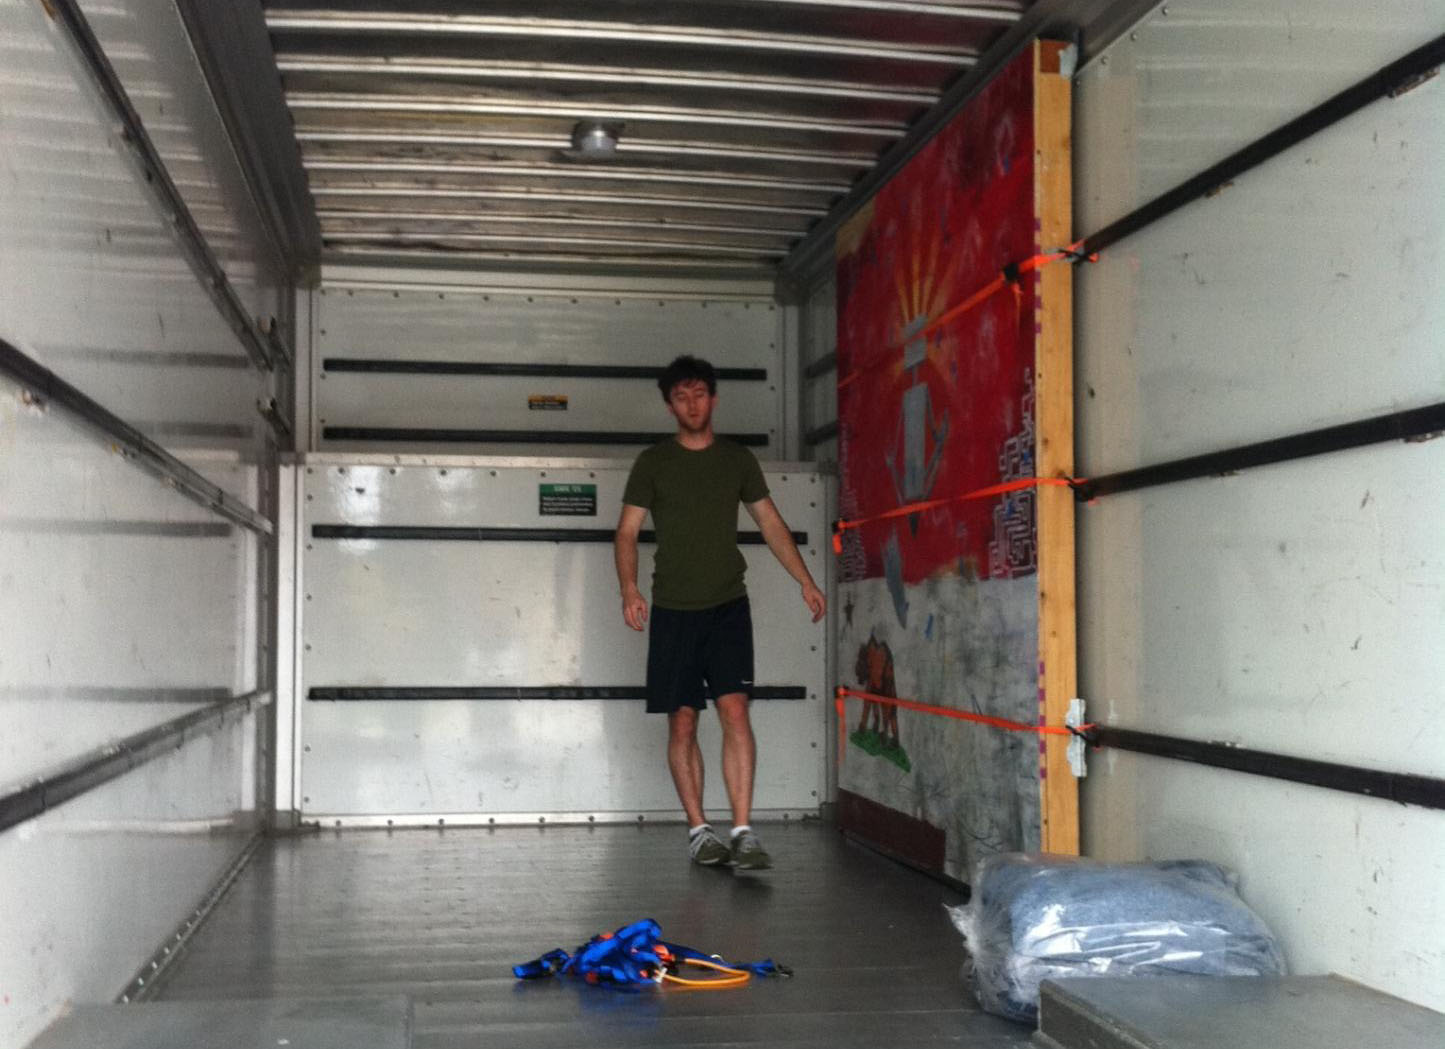 andy and the climbing wall in the u haul - Home Climbing Wall Designs